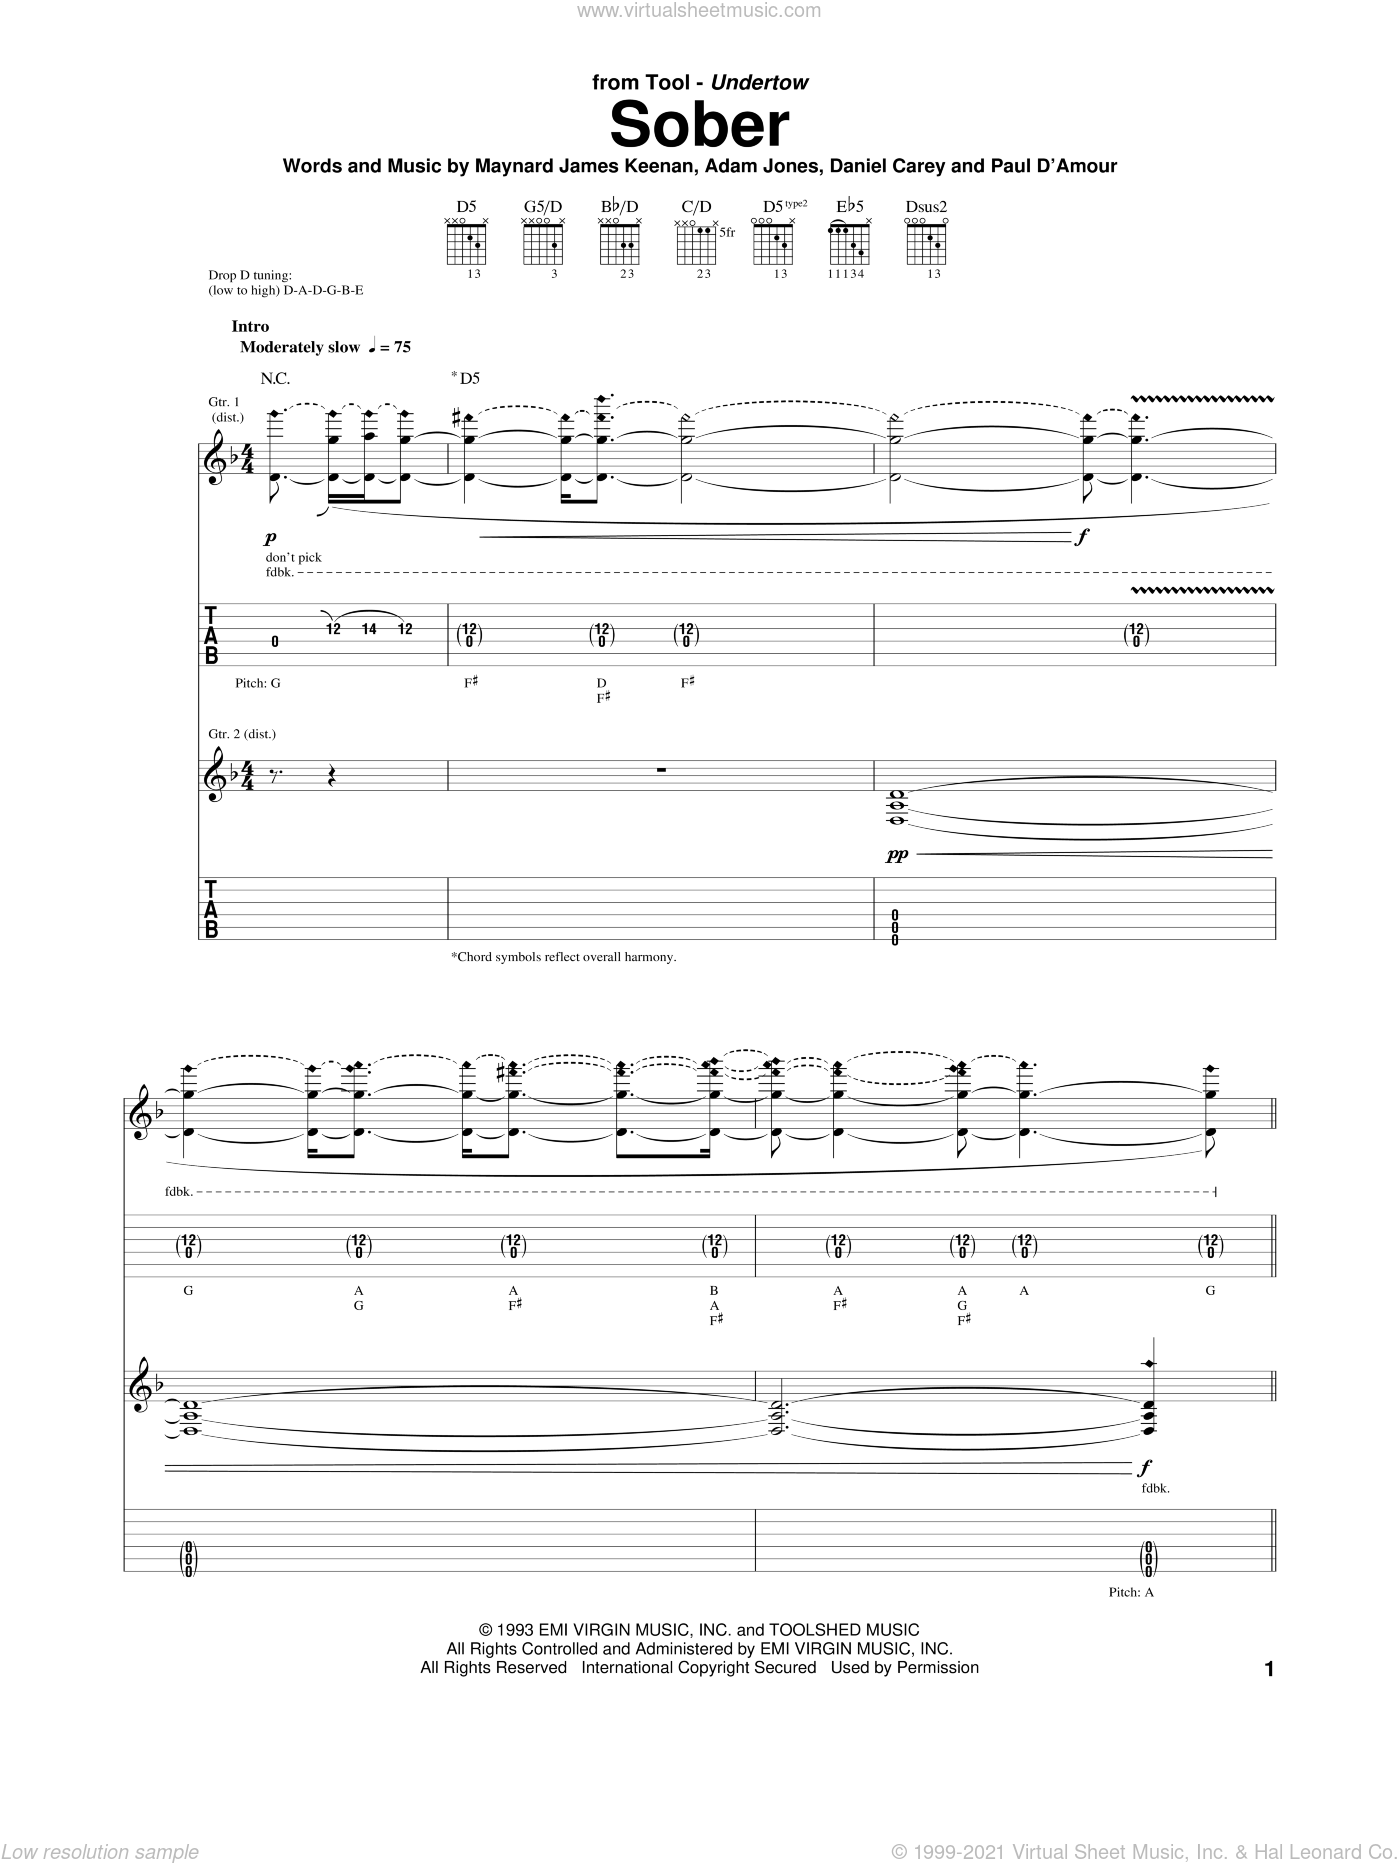 Sober sheet music for guitar (tablature) by Maynard James Keenan